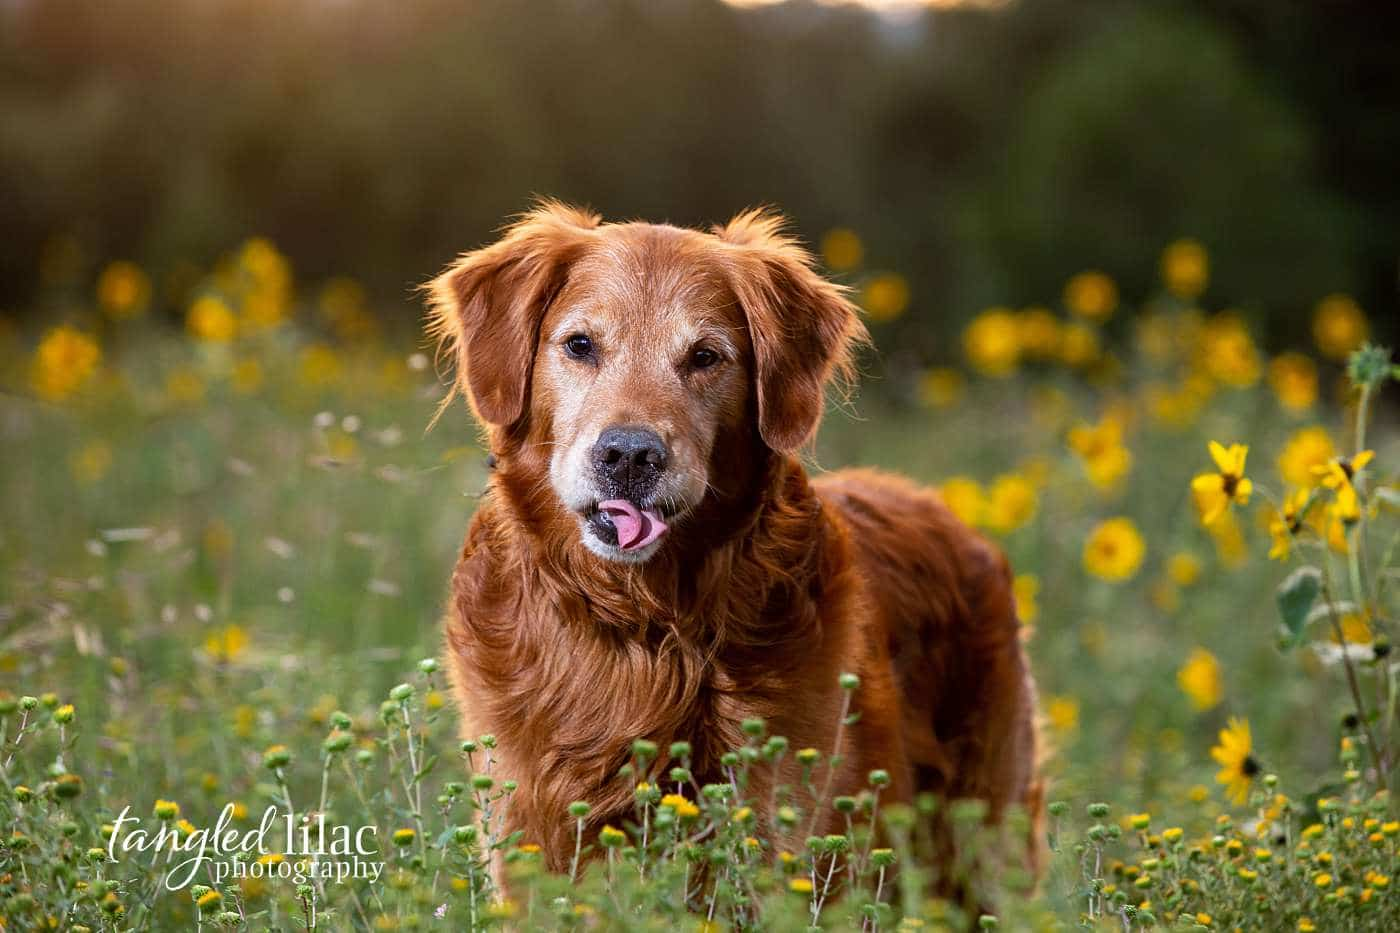 Golden Retriever with tongue out smiling at the photographer